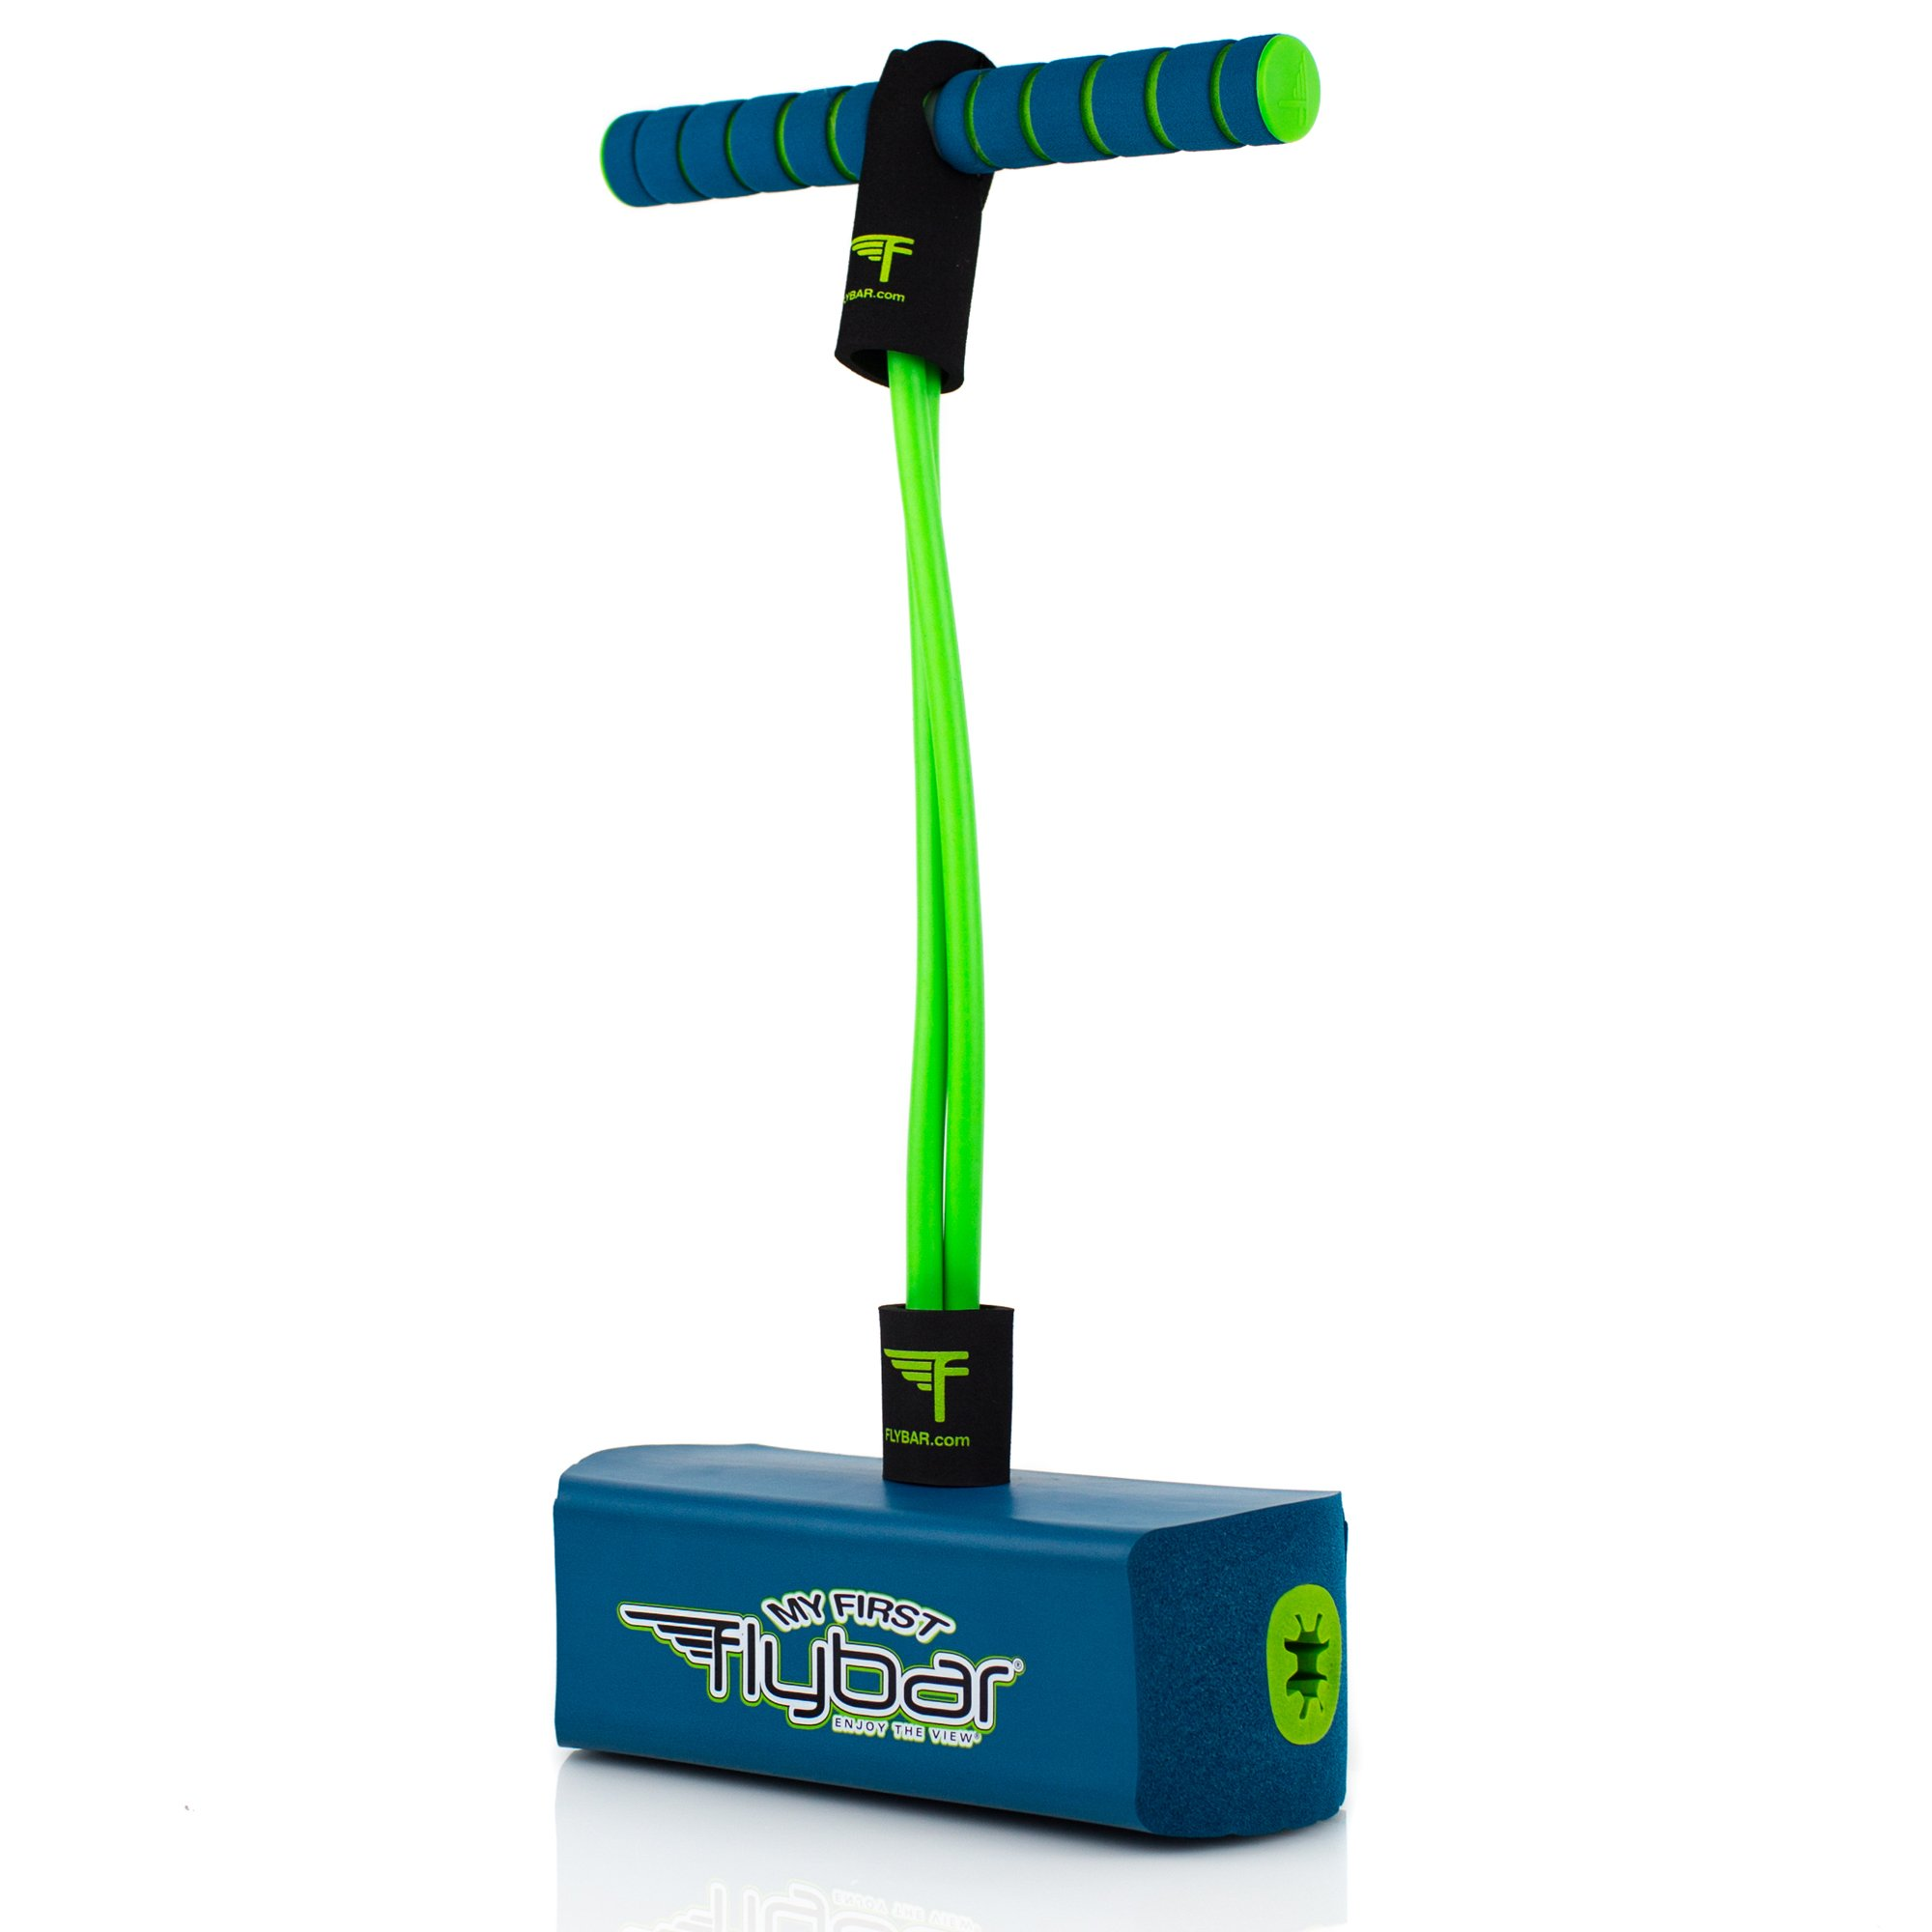 Flybar My First Foam Pogo Jumper for Kids Fun and Safe Pogo Stick, Durable Foam and Bungee Jumper for Ages 3 and up Toddler Toys, Supports up to 250lbs (Blue) by Flybar